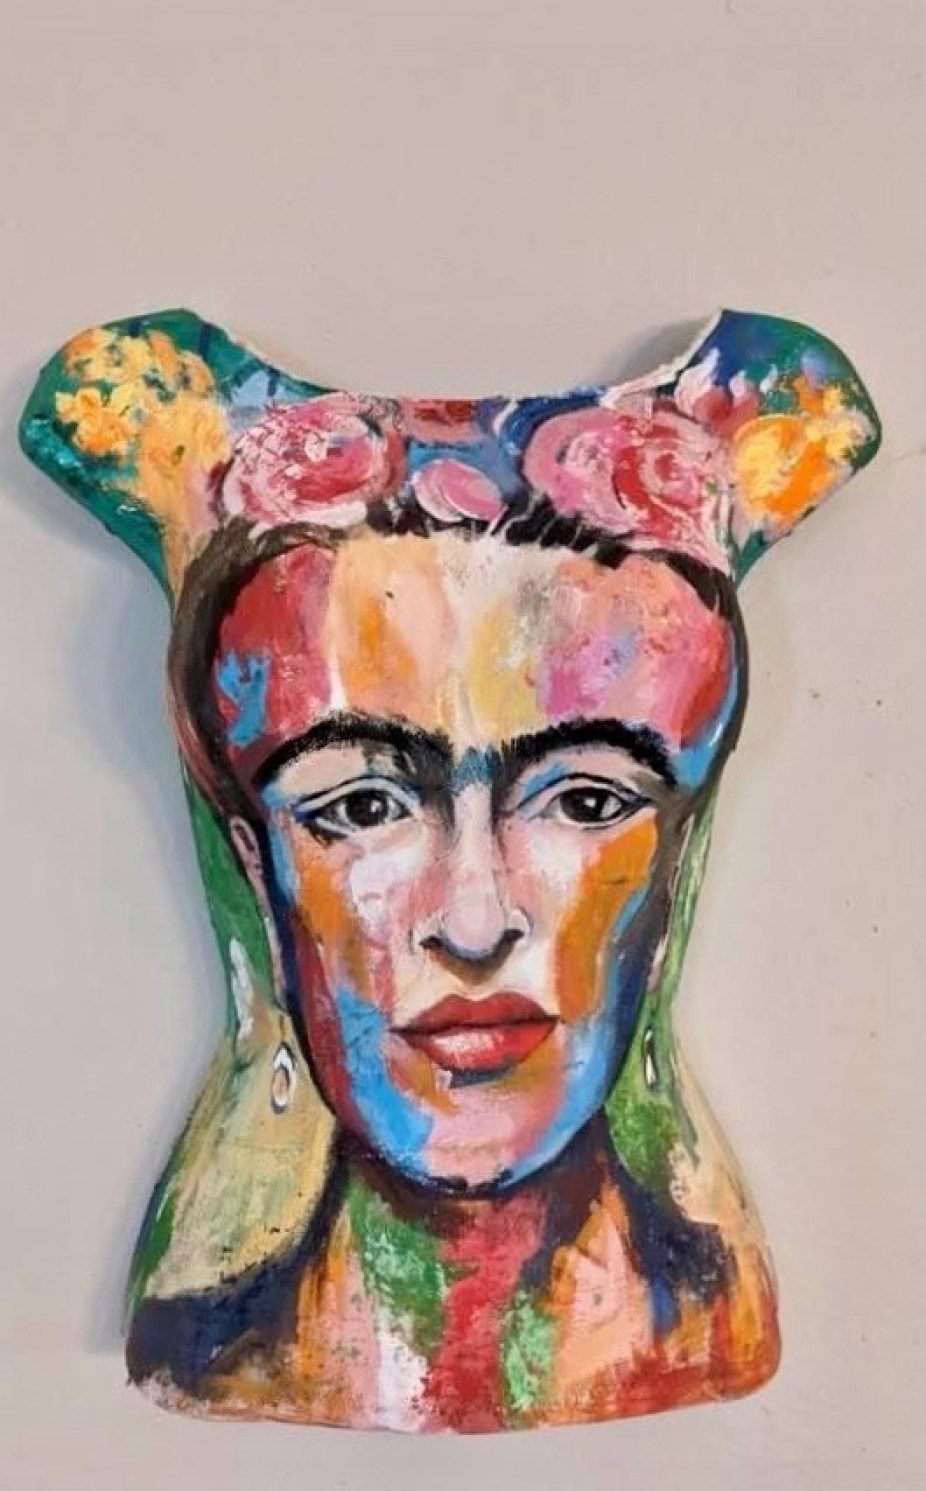 The face of Frida Kahlo painted on a mannequin bust.